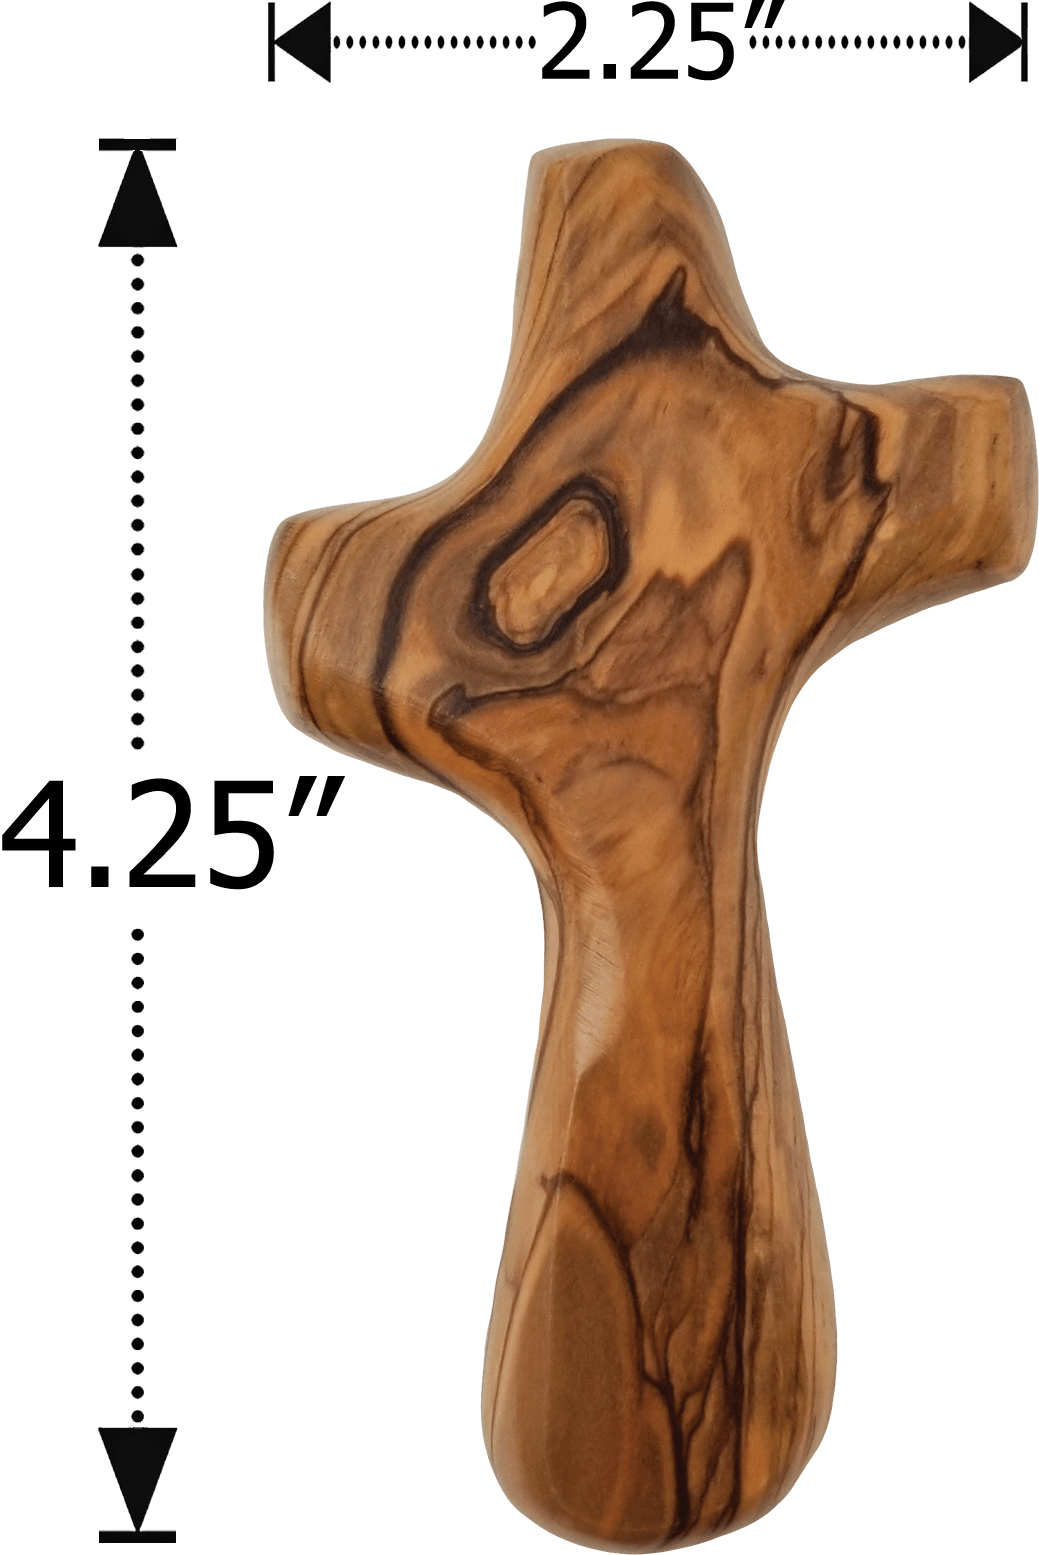 Holy Land Olive Wood Deluxe Handheld Prayer Comfort Cross - Large - Logos Trading Post, Christian Gift